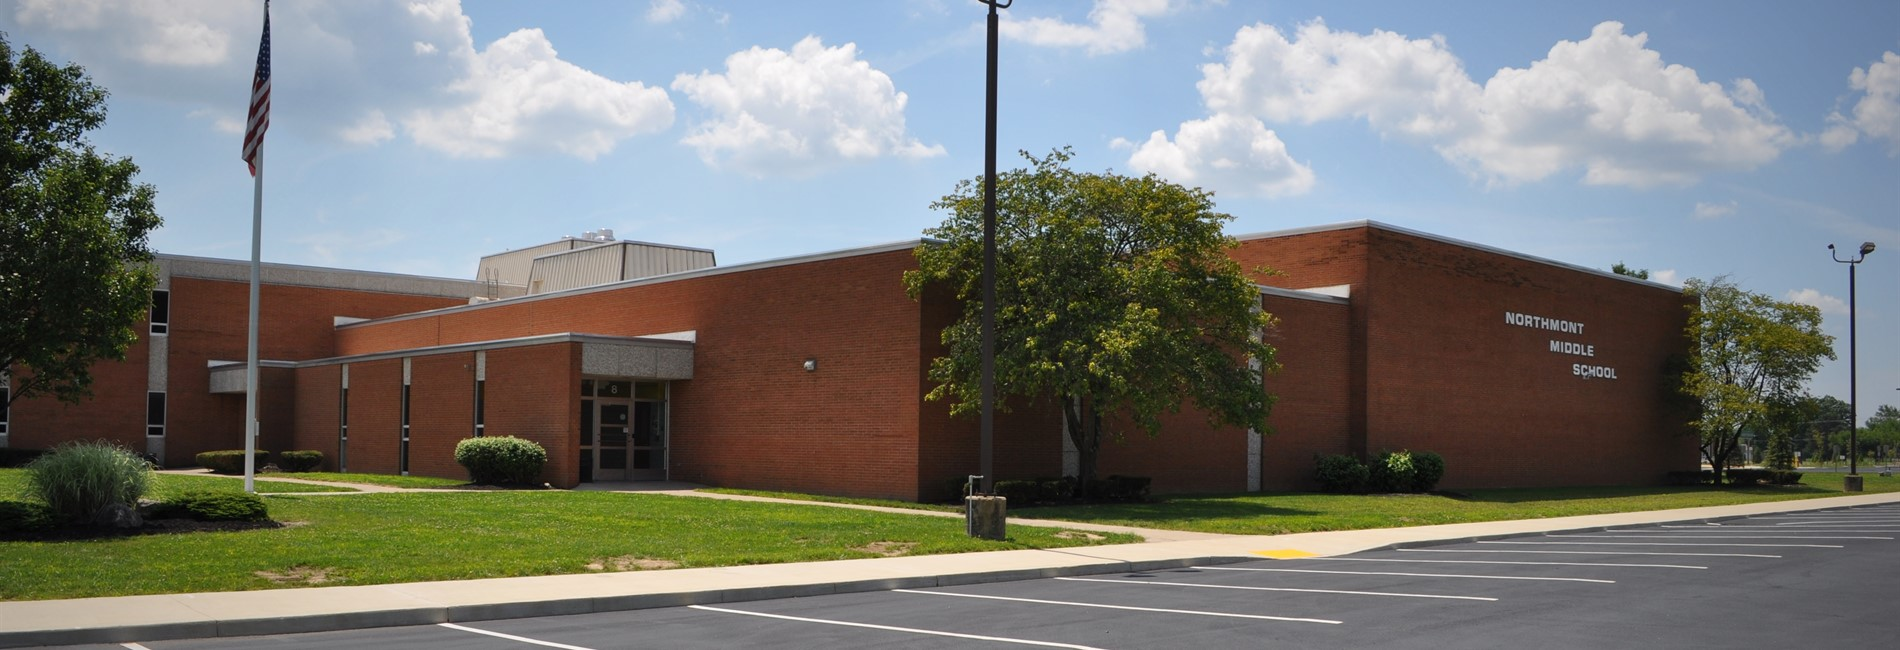 Northmont Middle School